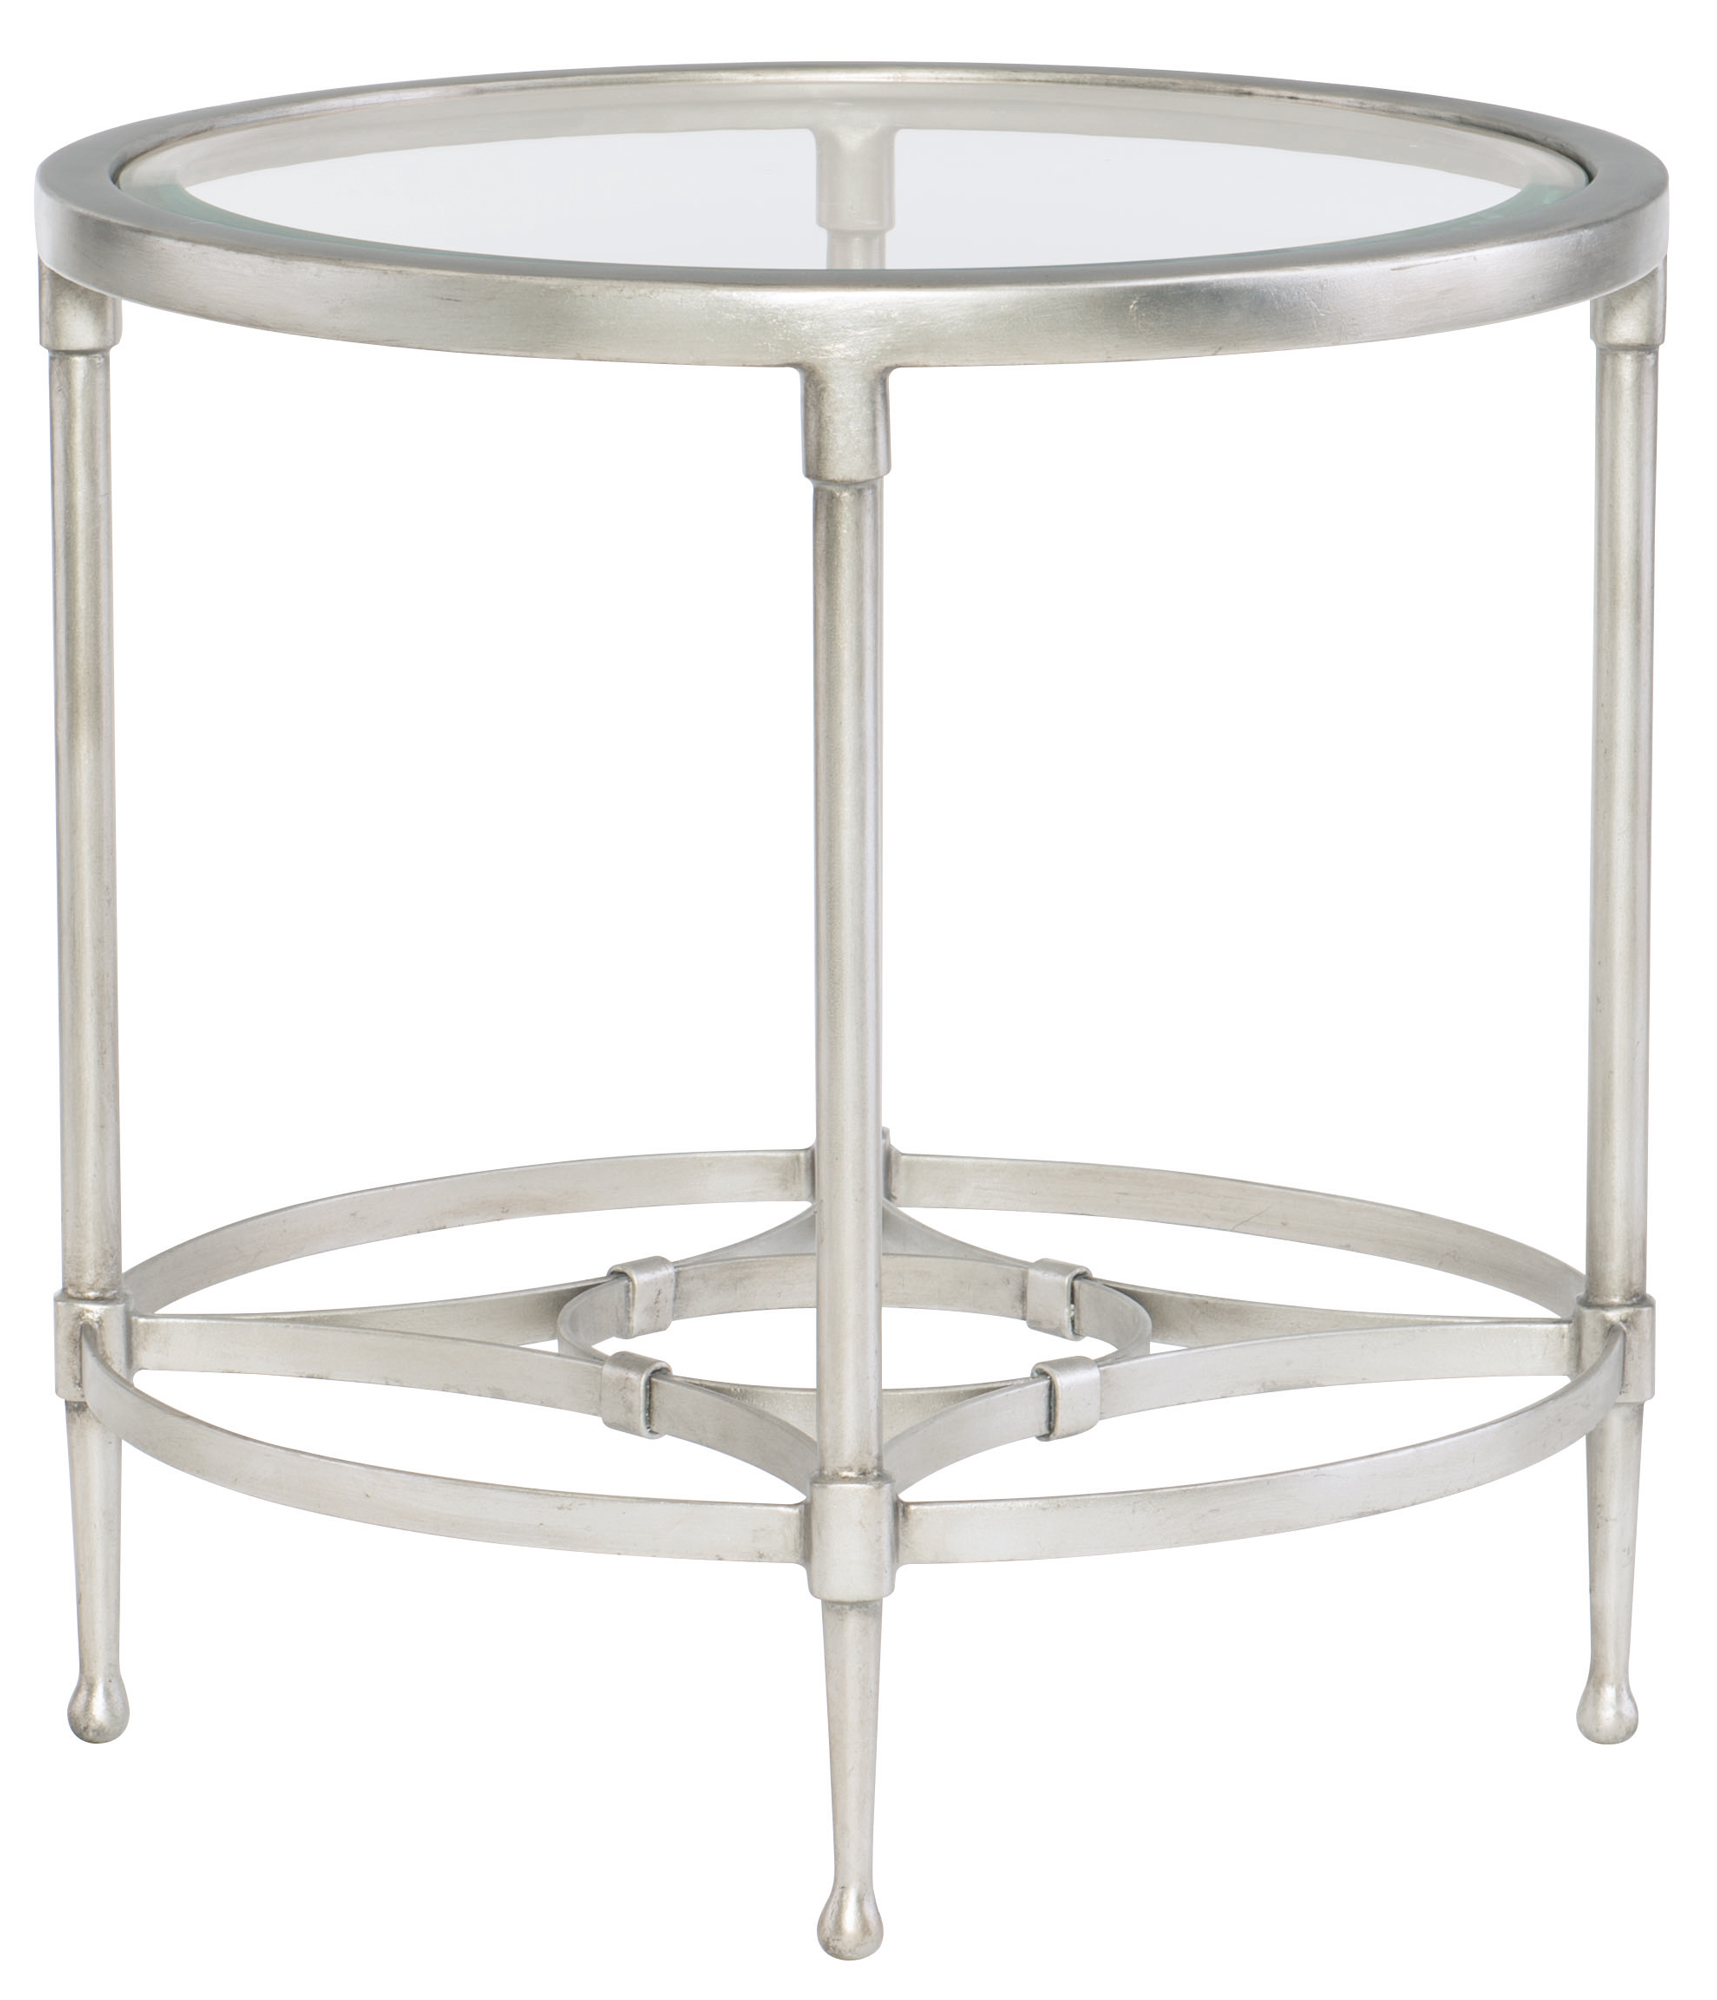 Metal End Tables ~ Round metal end table with glass top bernhardt